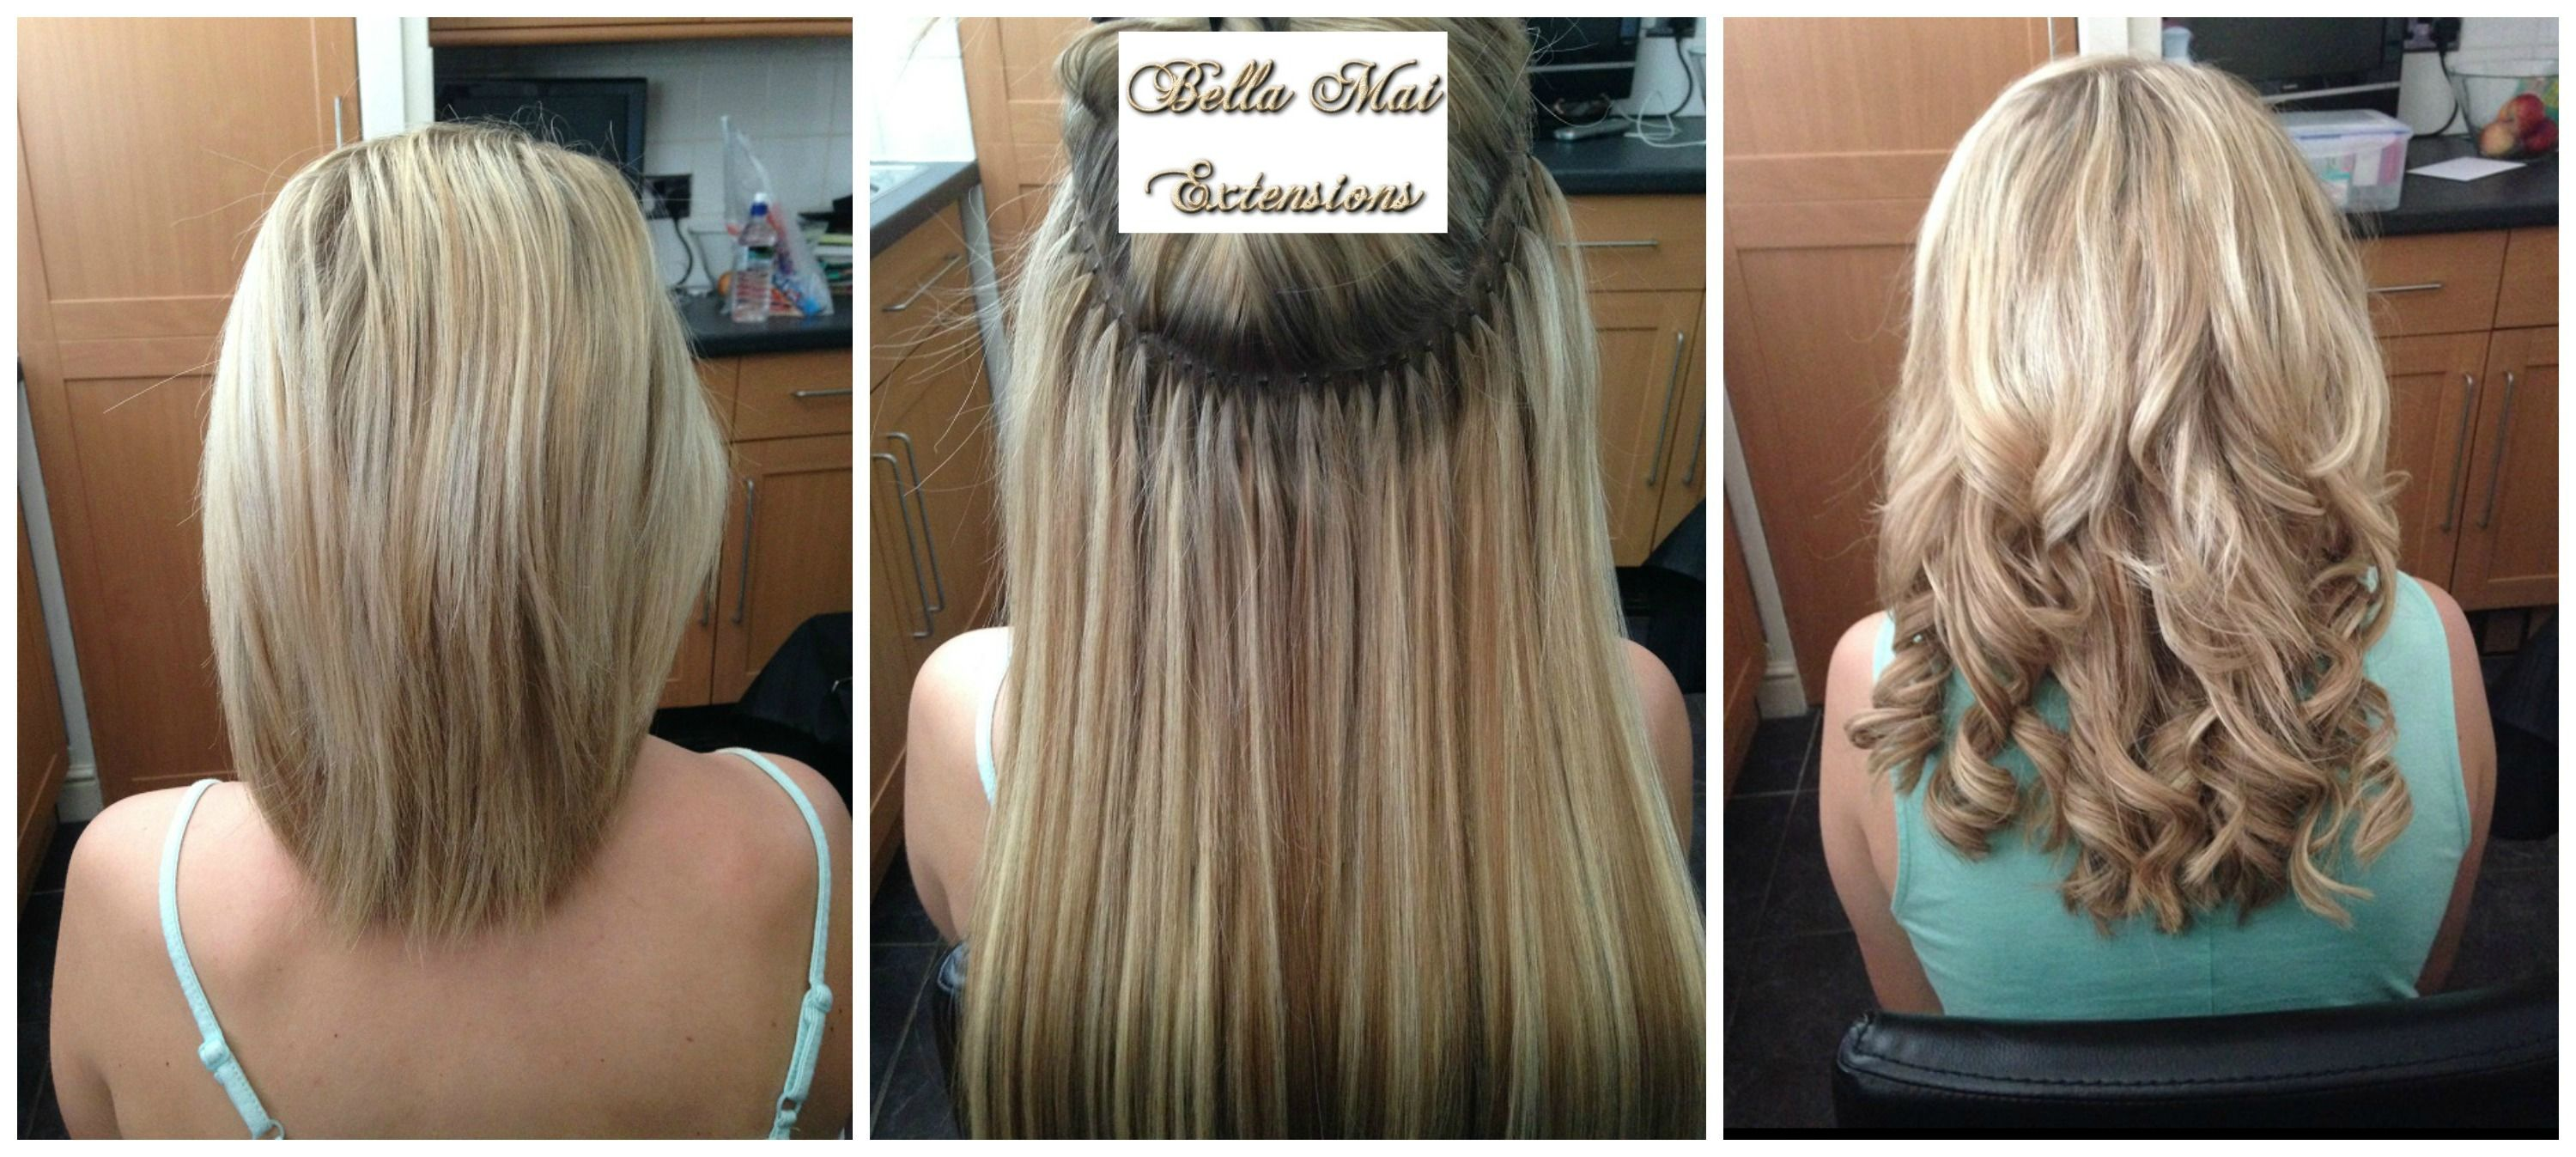 Nano Hair Extensionsdeos On My Website Extensions Shiz